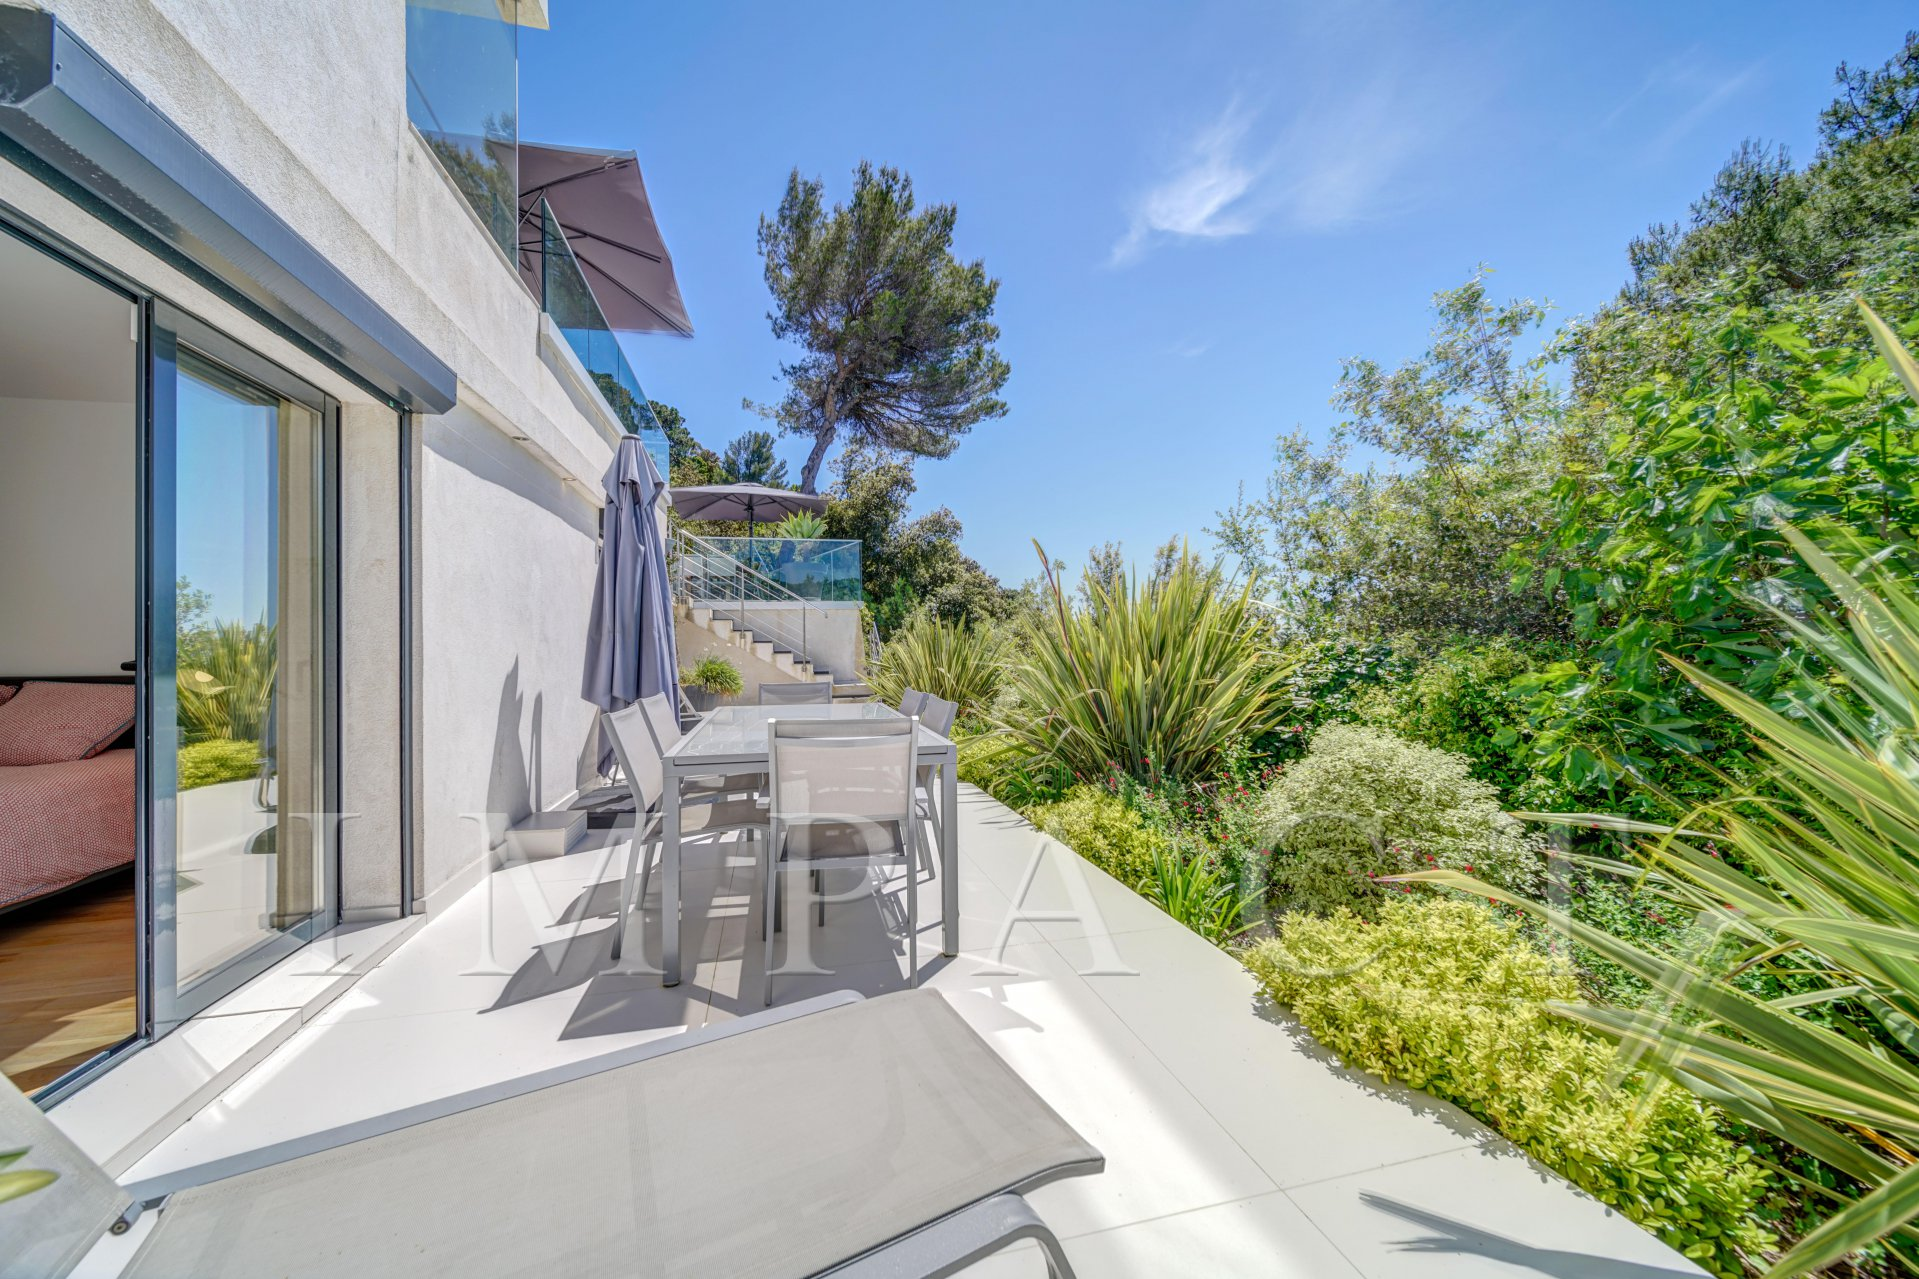 Make an offer - House for sale Cannes Beau Soleil -  6 master bedrooms - For sale Cannes Californie -  panoramic sea view